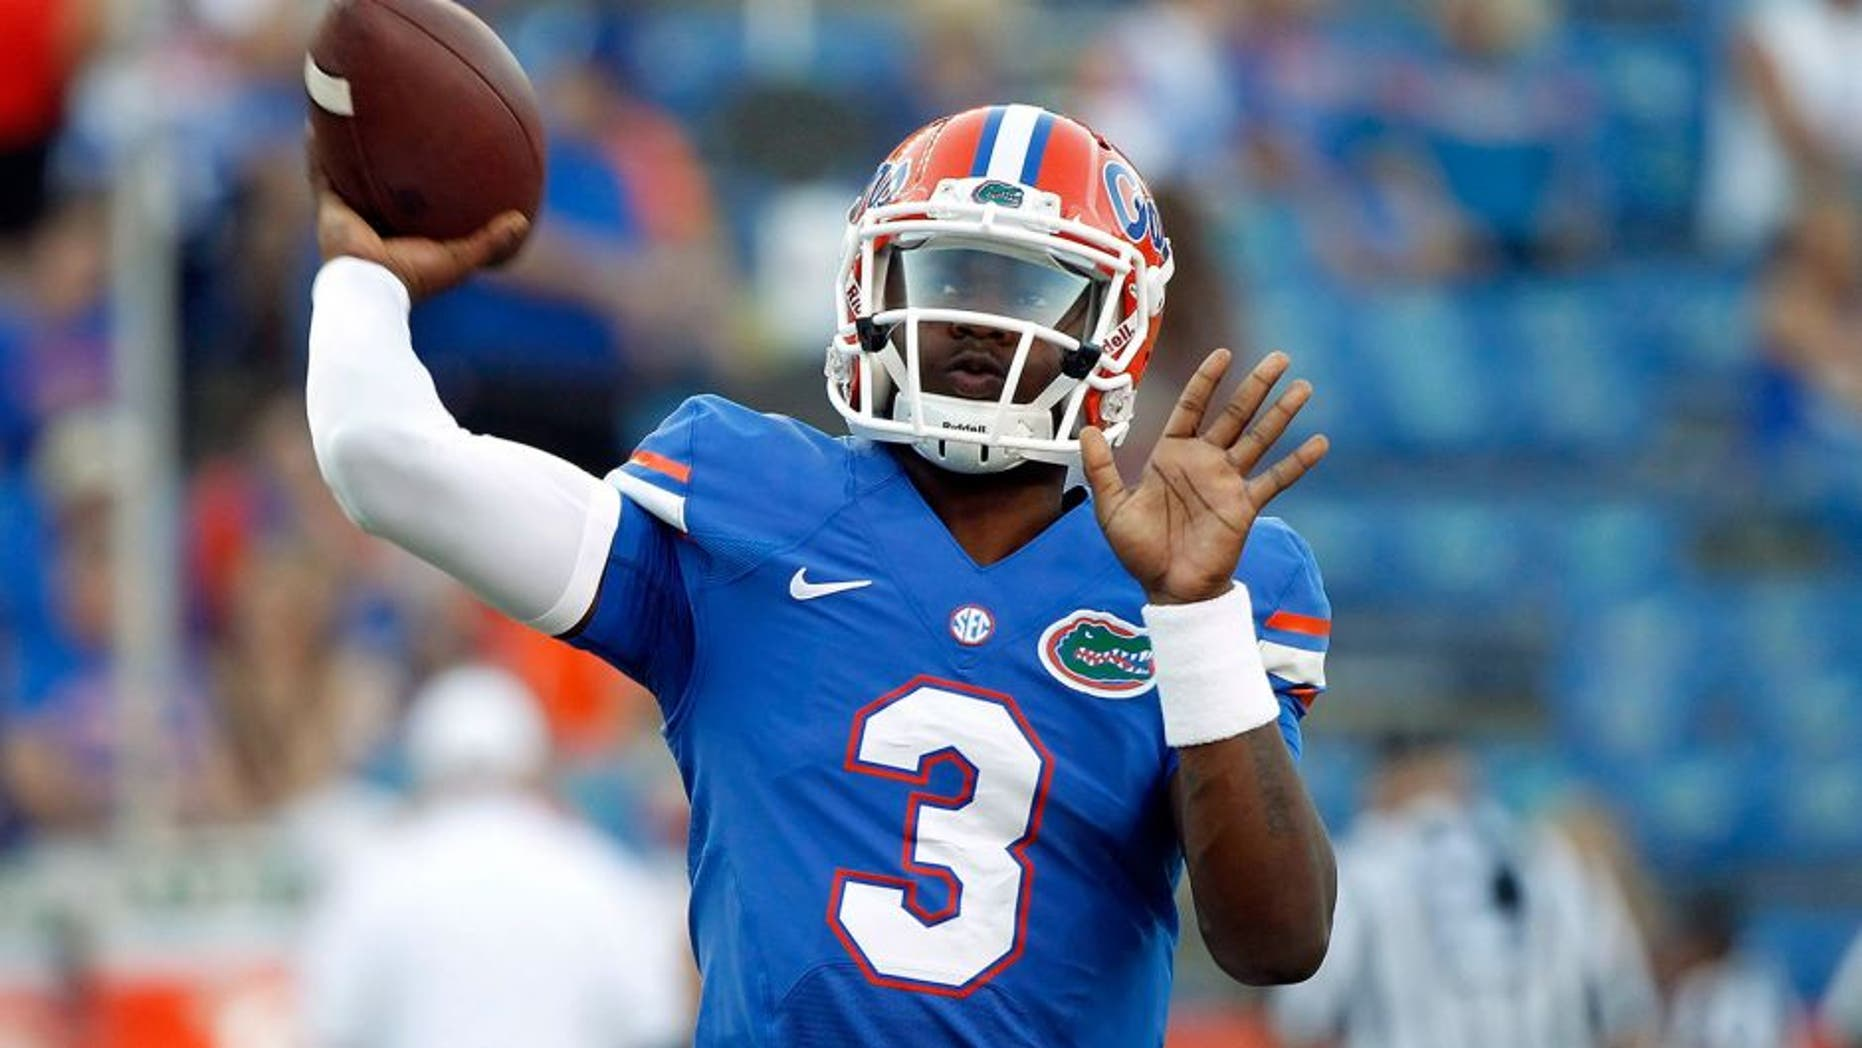 Oct 18, 2014; Gainesville, FL, USA; Florida Gators quarterback Treon Harris (3) works out prior to the game against the Missouri Tigers at Ben Hill Griffin Stadium. Mandatory Credit: Kim Klement-USA TODAY Sports